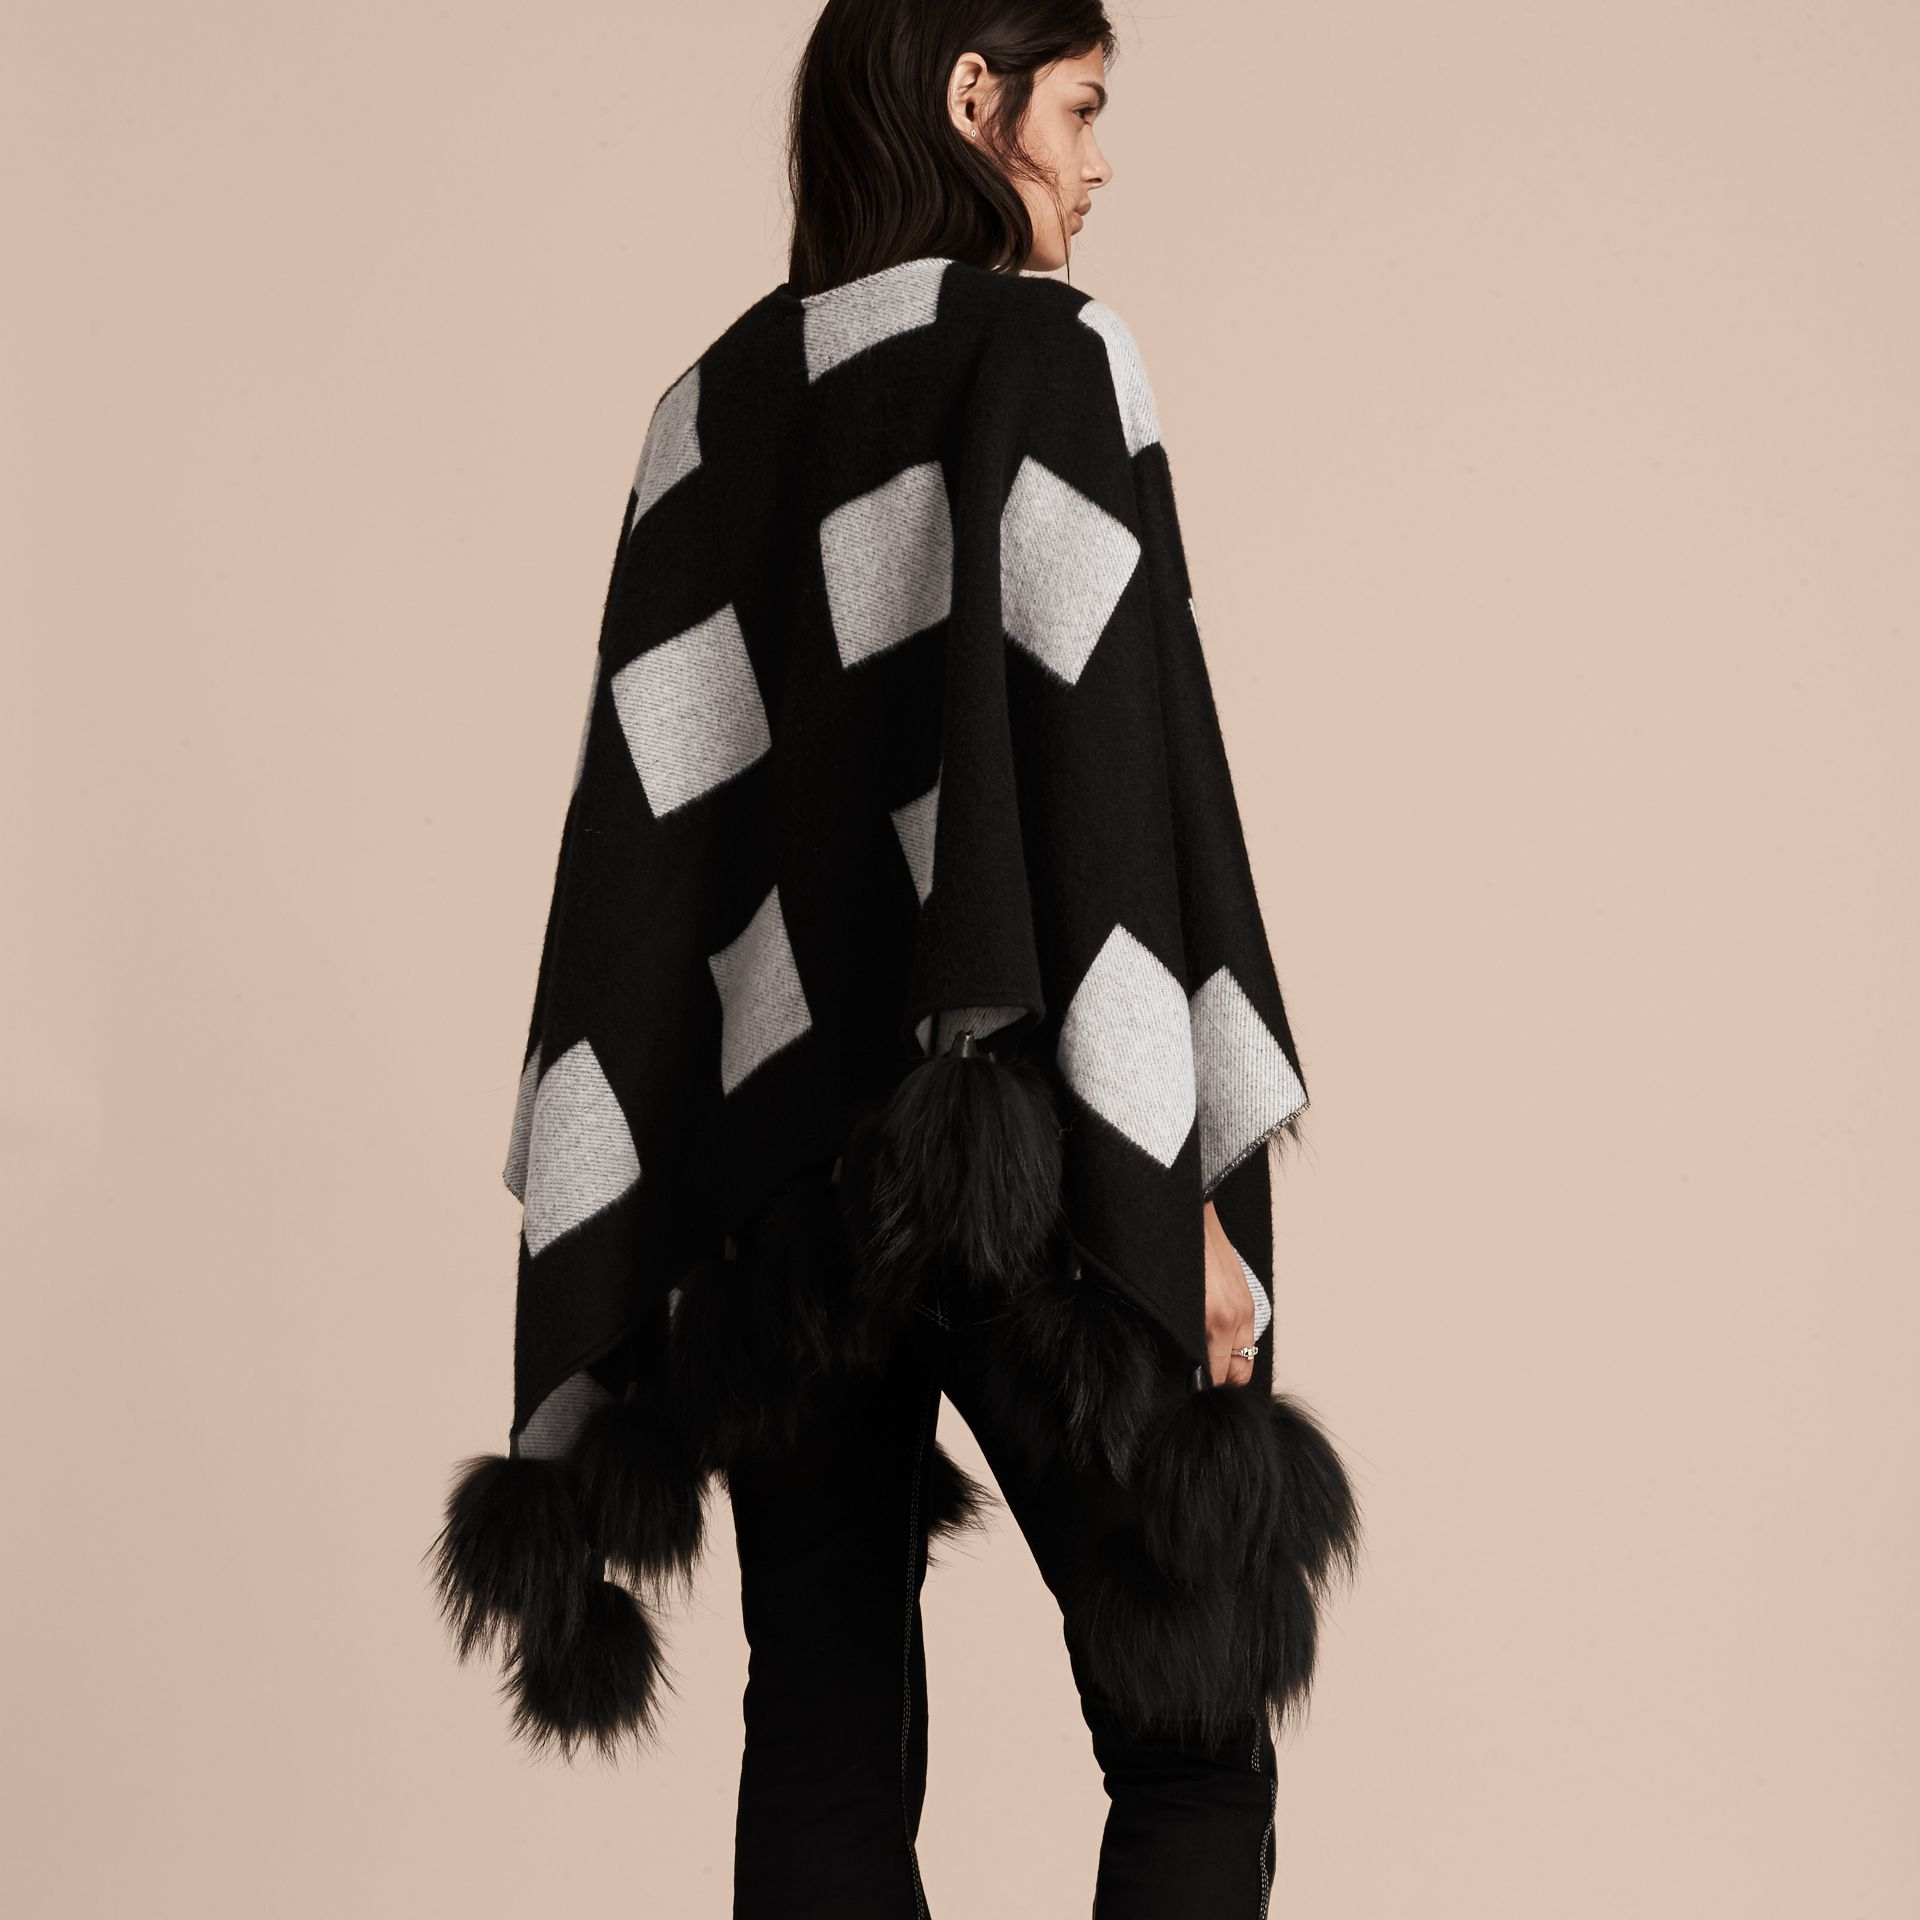 Check Jacquard Cashmere Poncho with Raccoon Pom-poms - gallery image 3